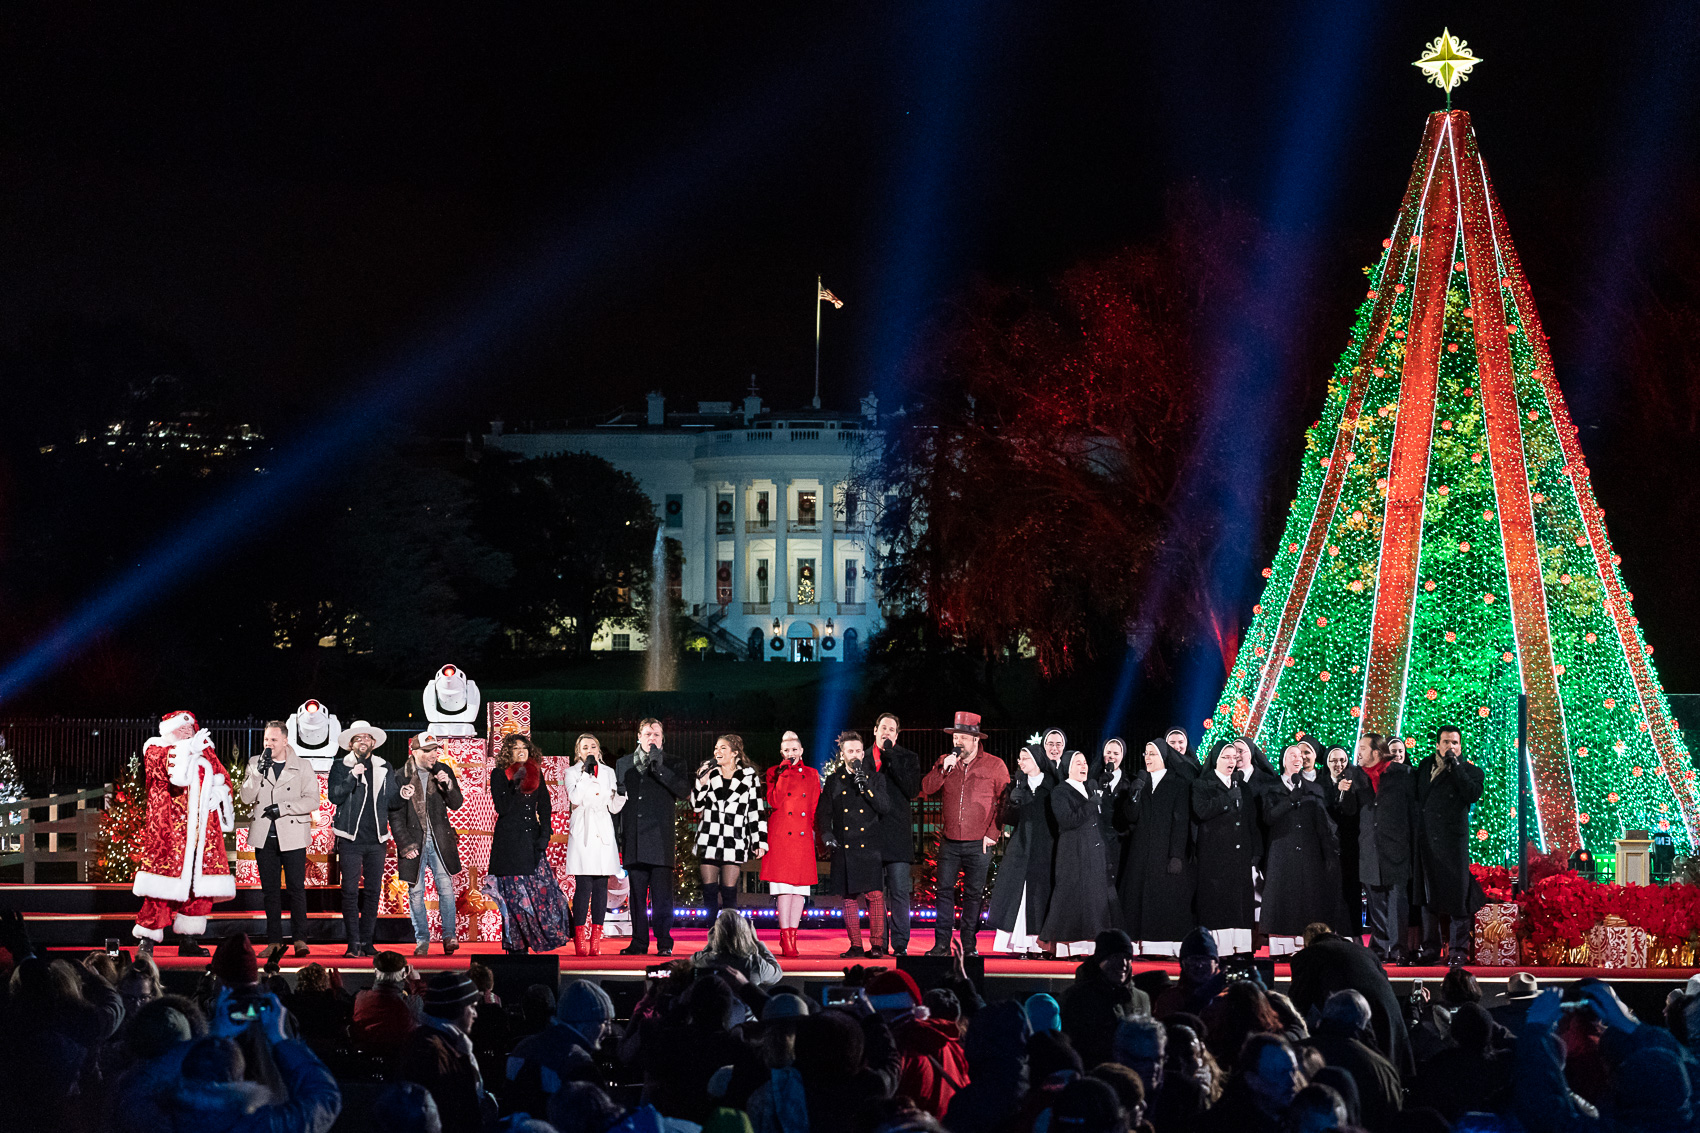 National Christmas Tree Lighting.File 2018 National Christmas Tree Lighting Jpg Wikimedia